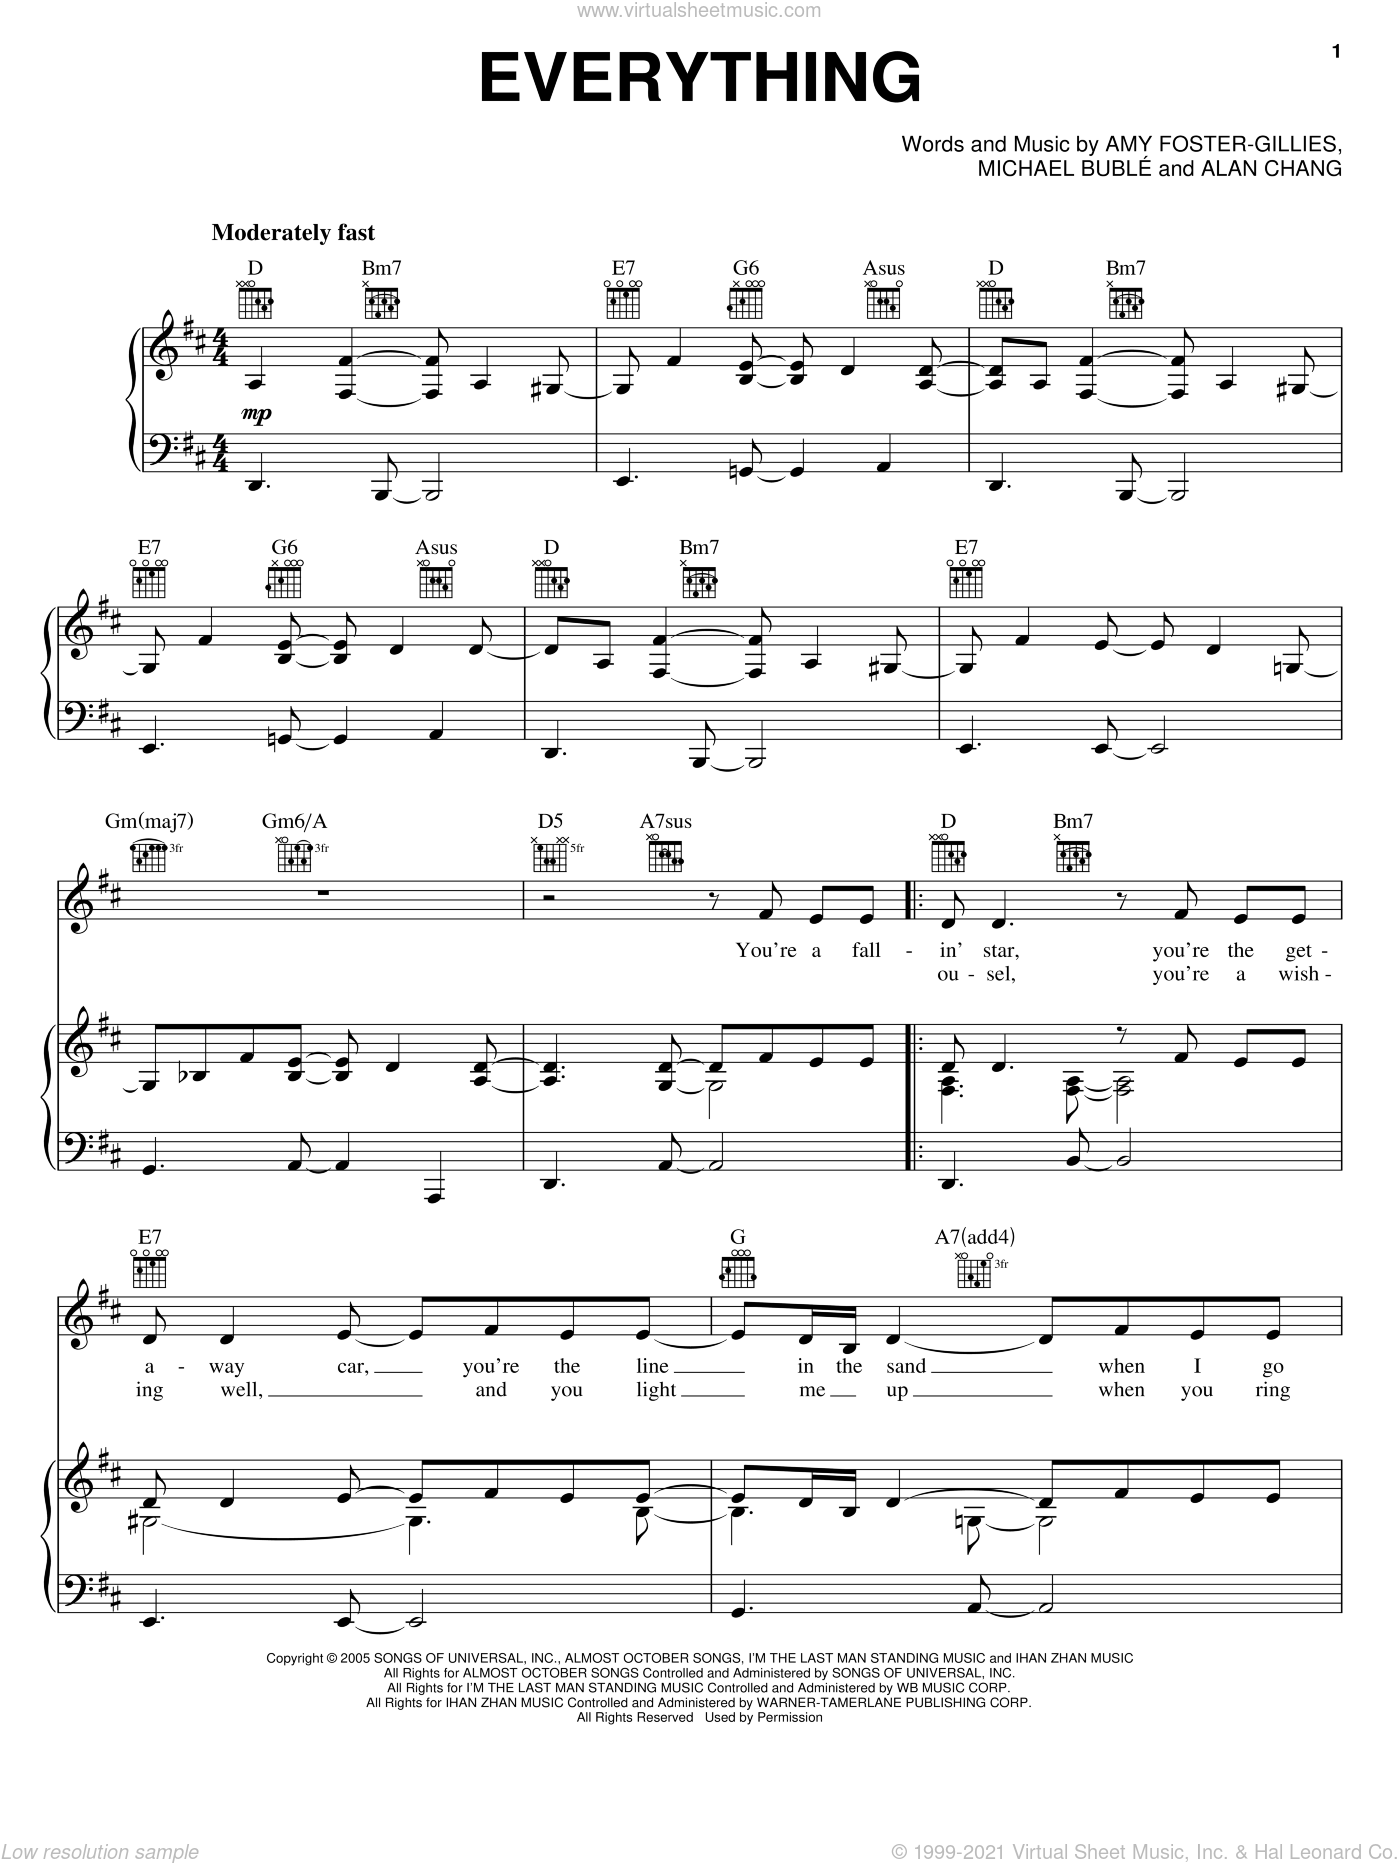 Everything sheet music for voice, piano or guitar by Michael Buble, Alan Chang and Amy Foster-Gillies, intermediate skill level